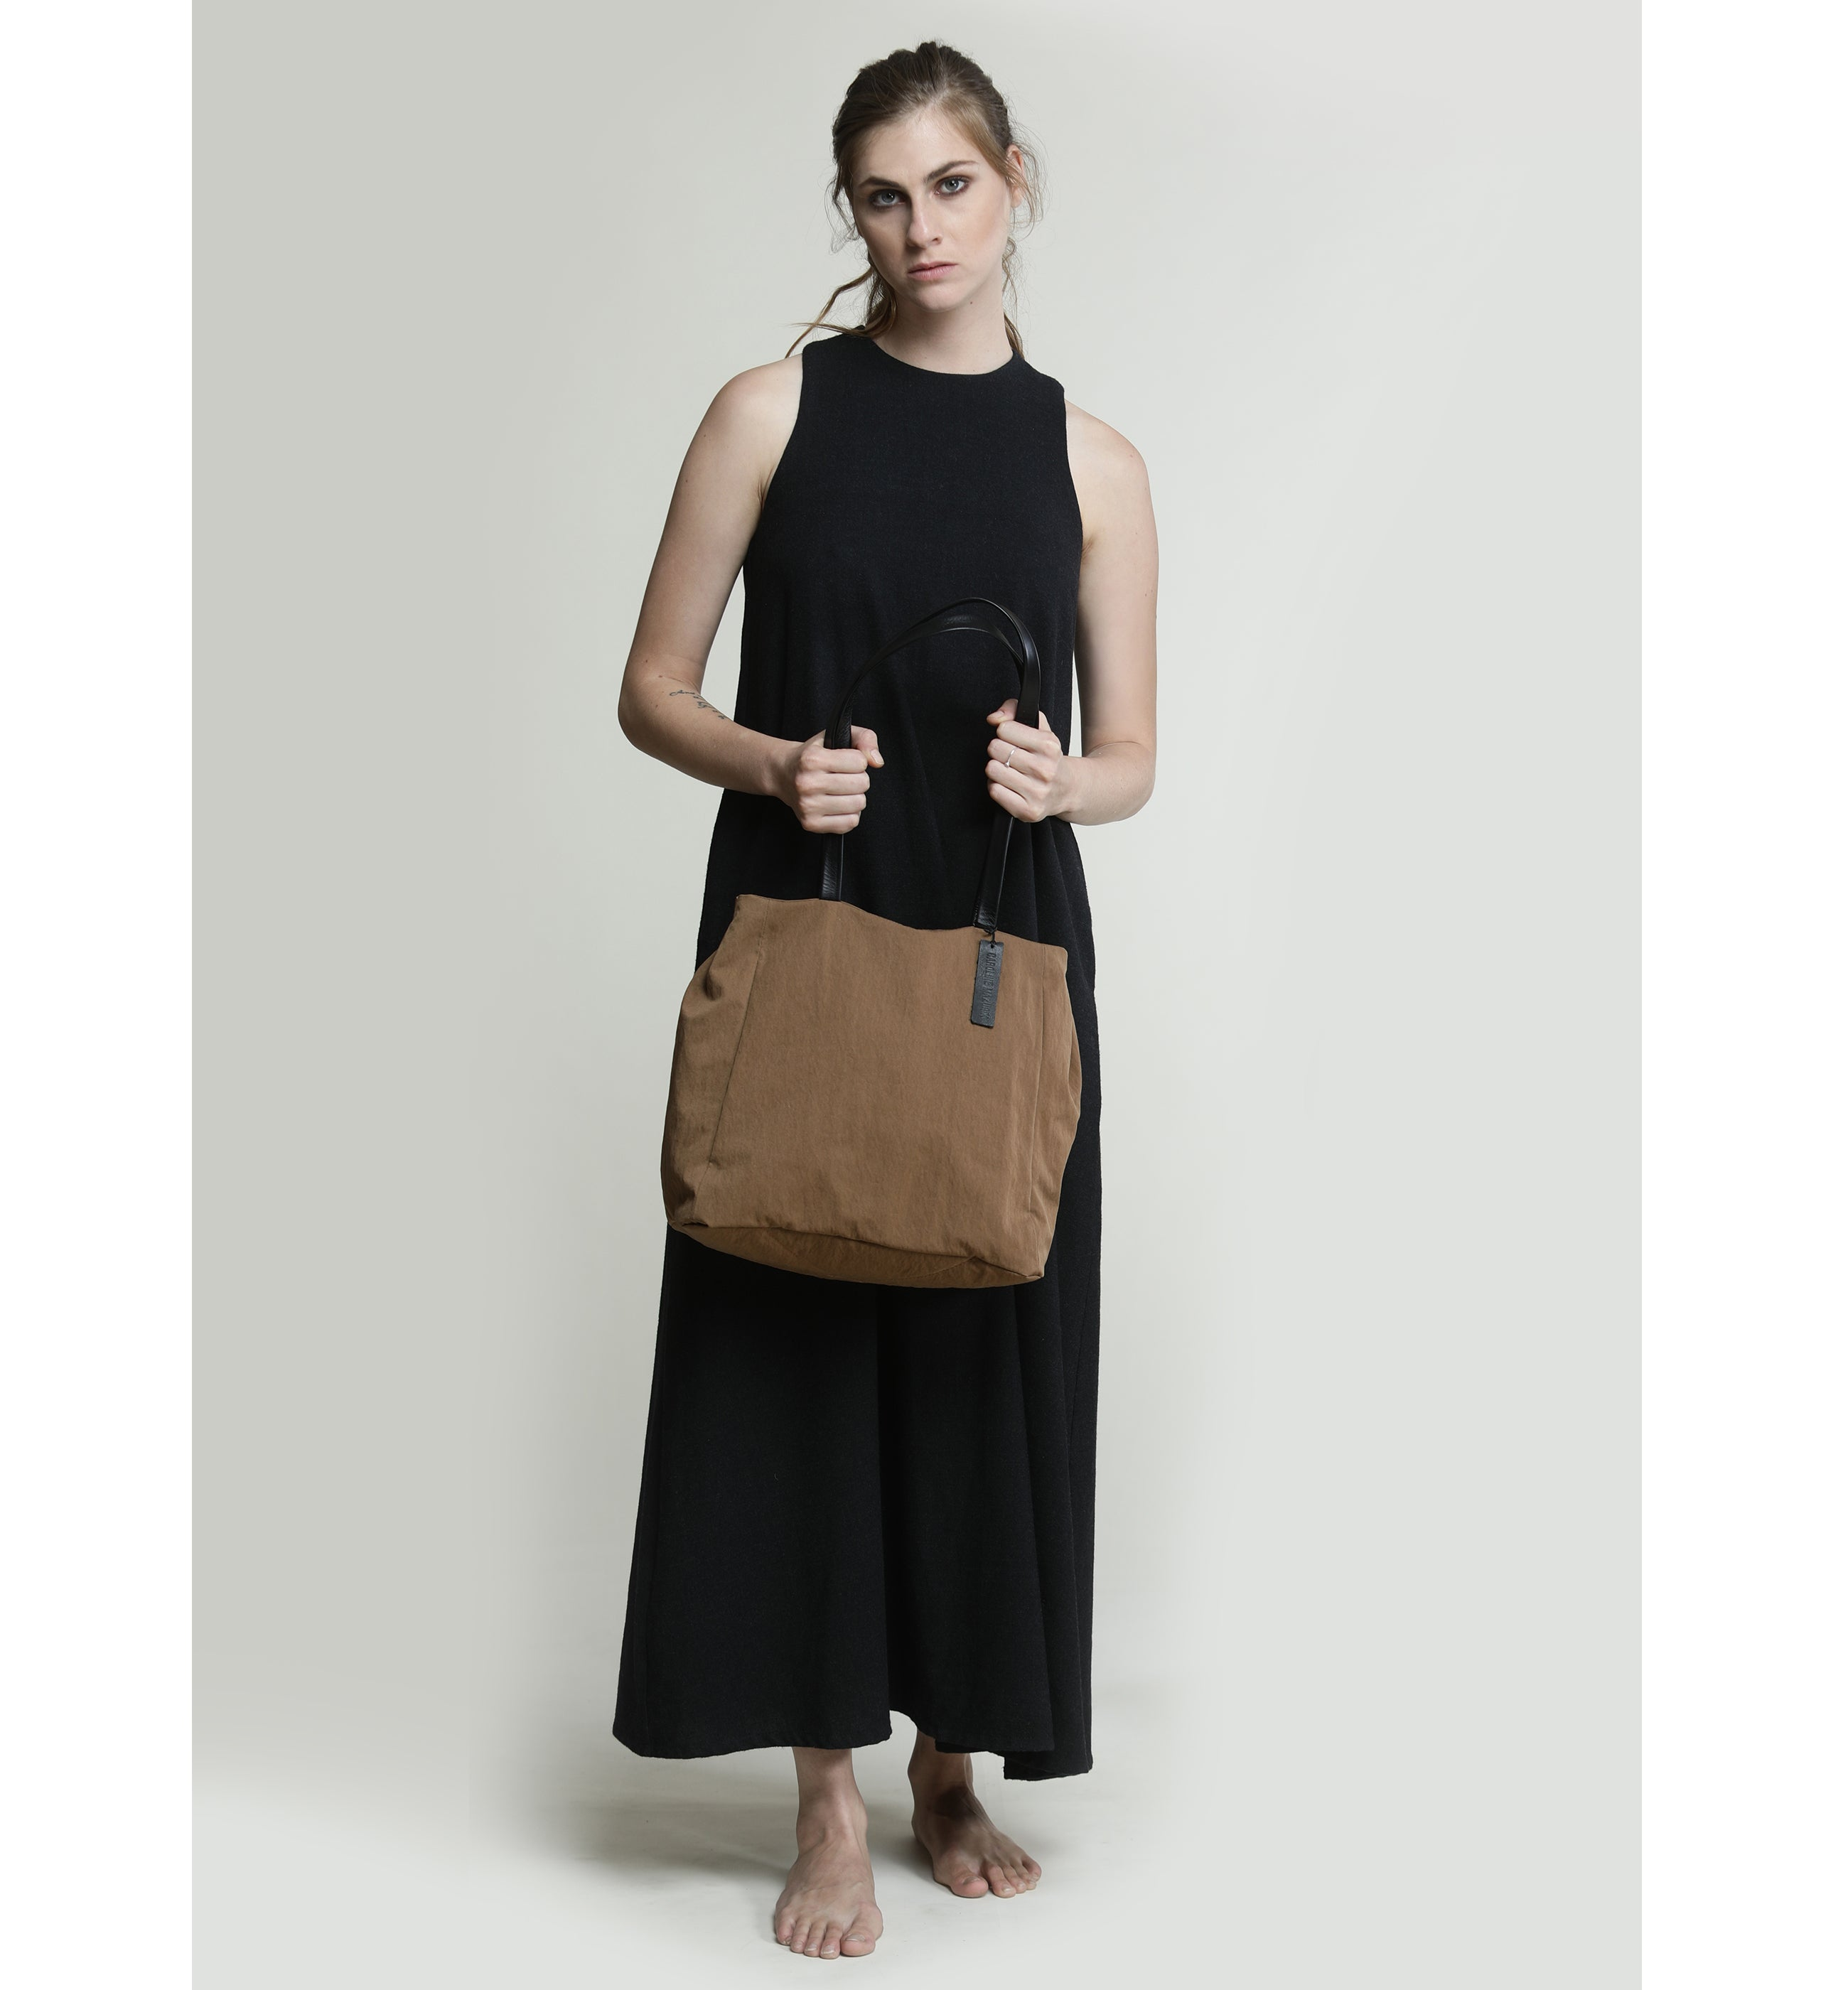 Dark Brown Shoulder Fabric Bag, Lightweight Tote bag with leather handles